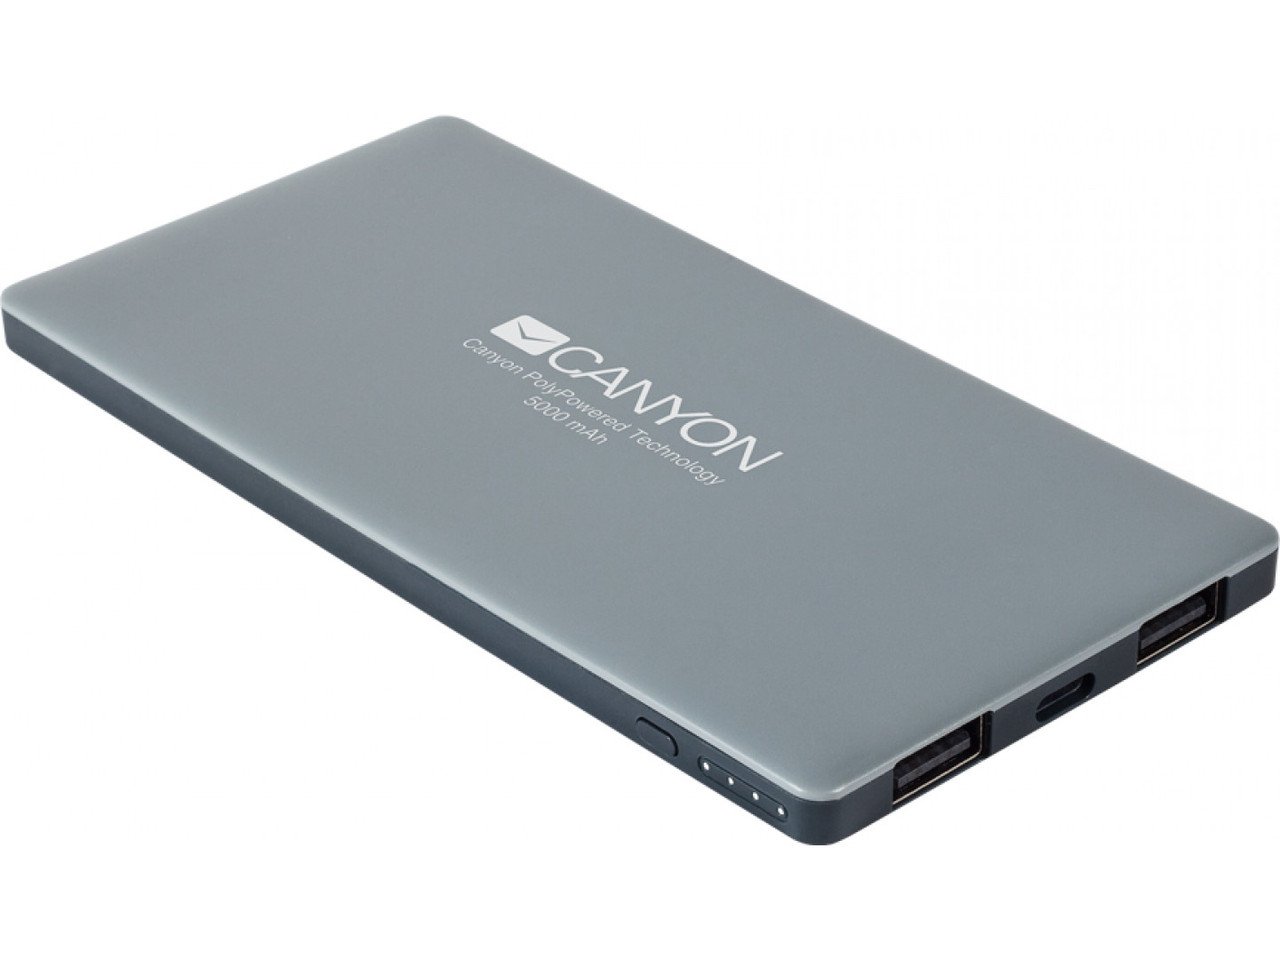 Банк заряда Canyon CNS-TPBP5DG 5000mah